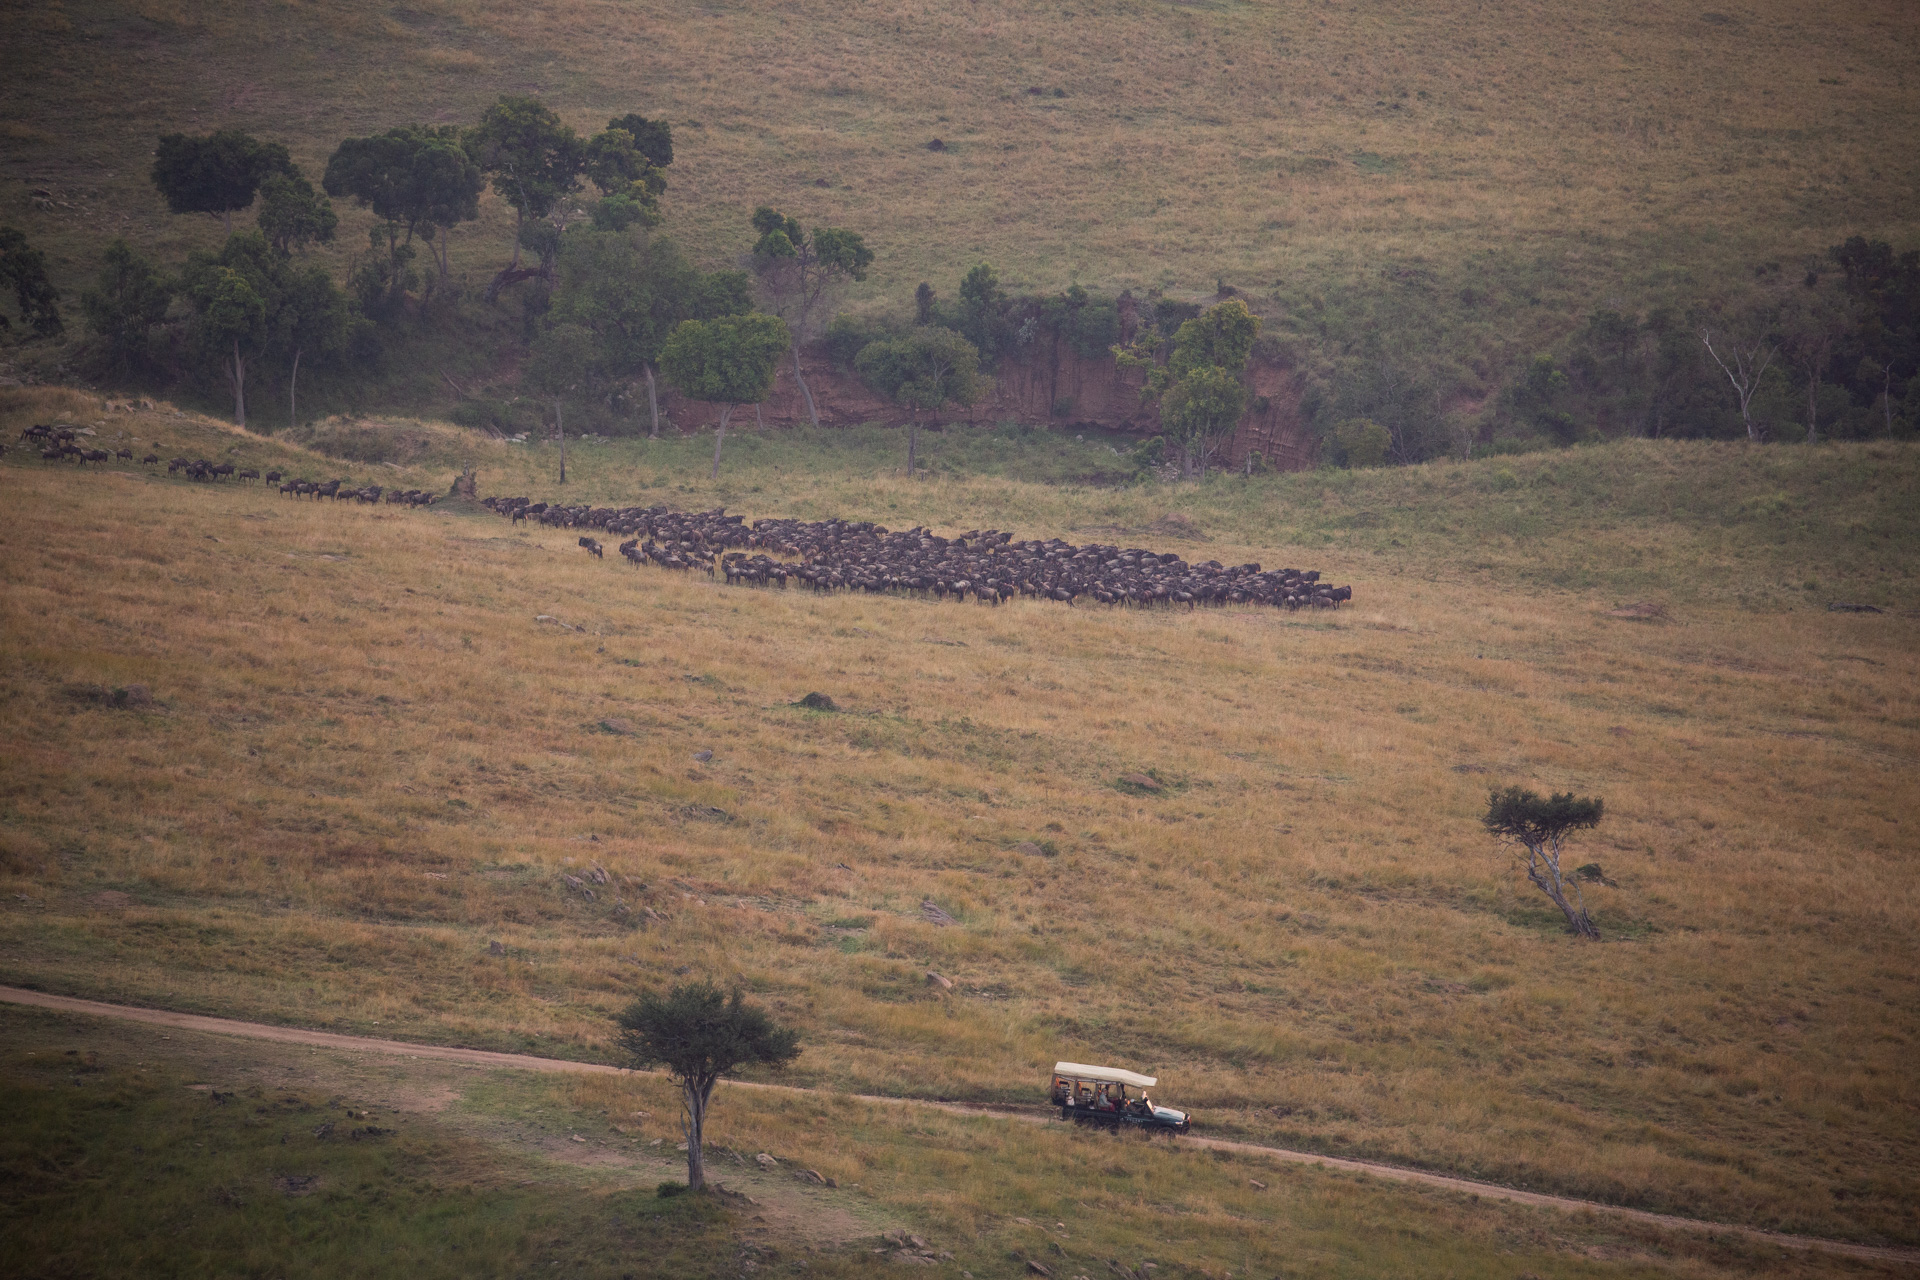 car and wildebeest